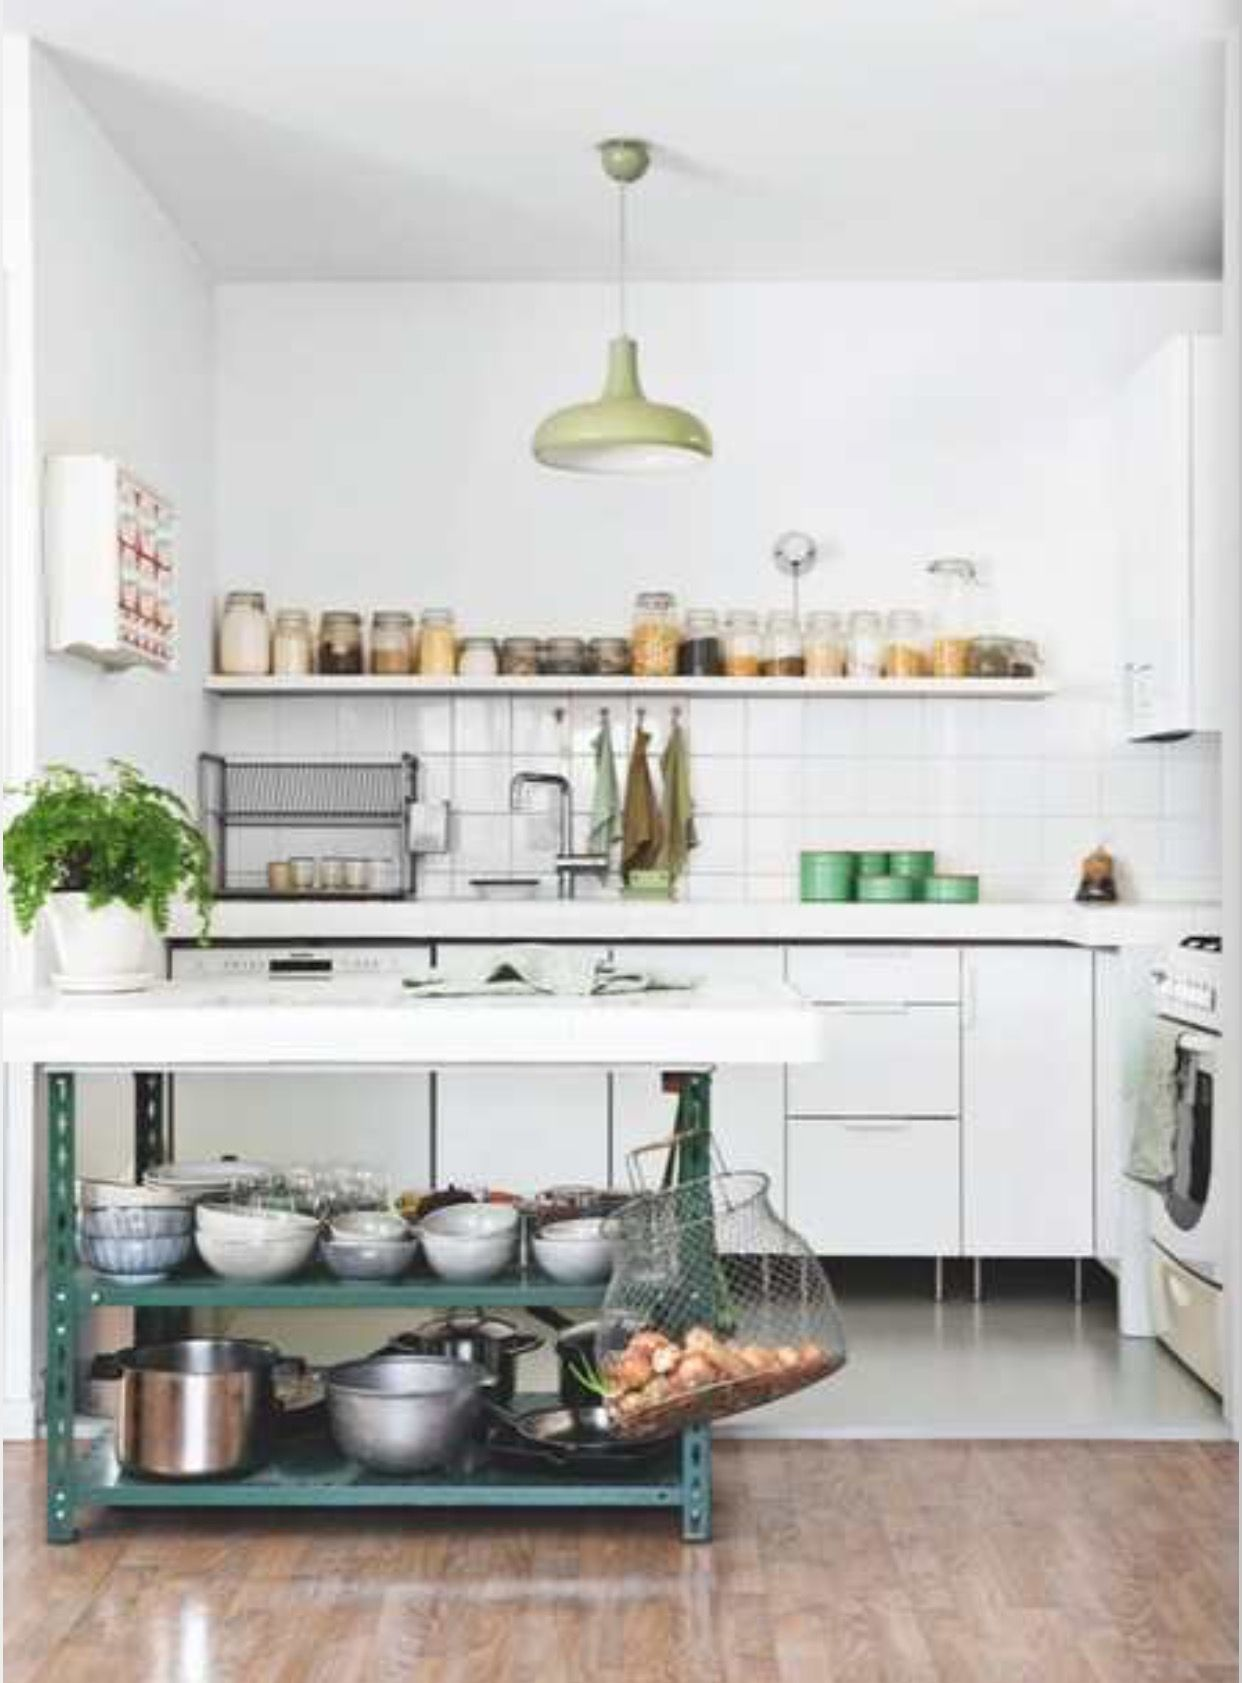 Pin by tal elbaz rath on this is where i cook kitchen